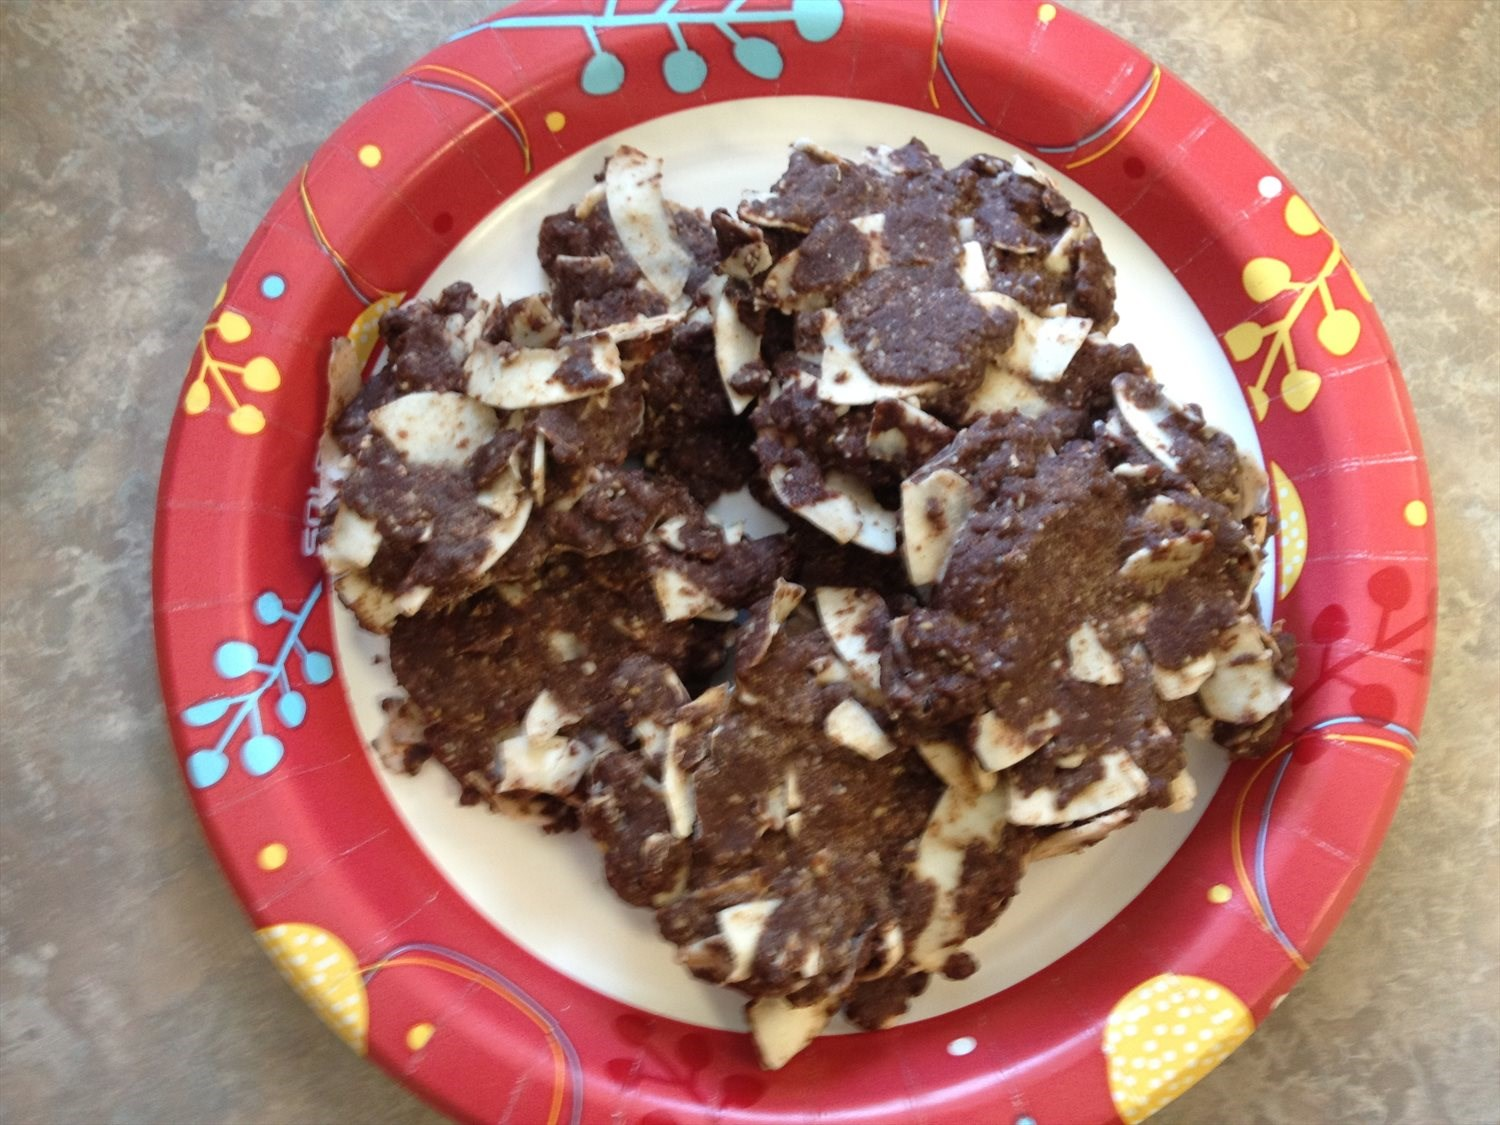 Another No Bake Chocolate Cookie